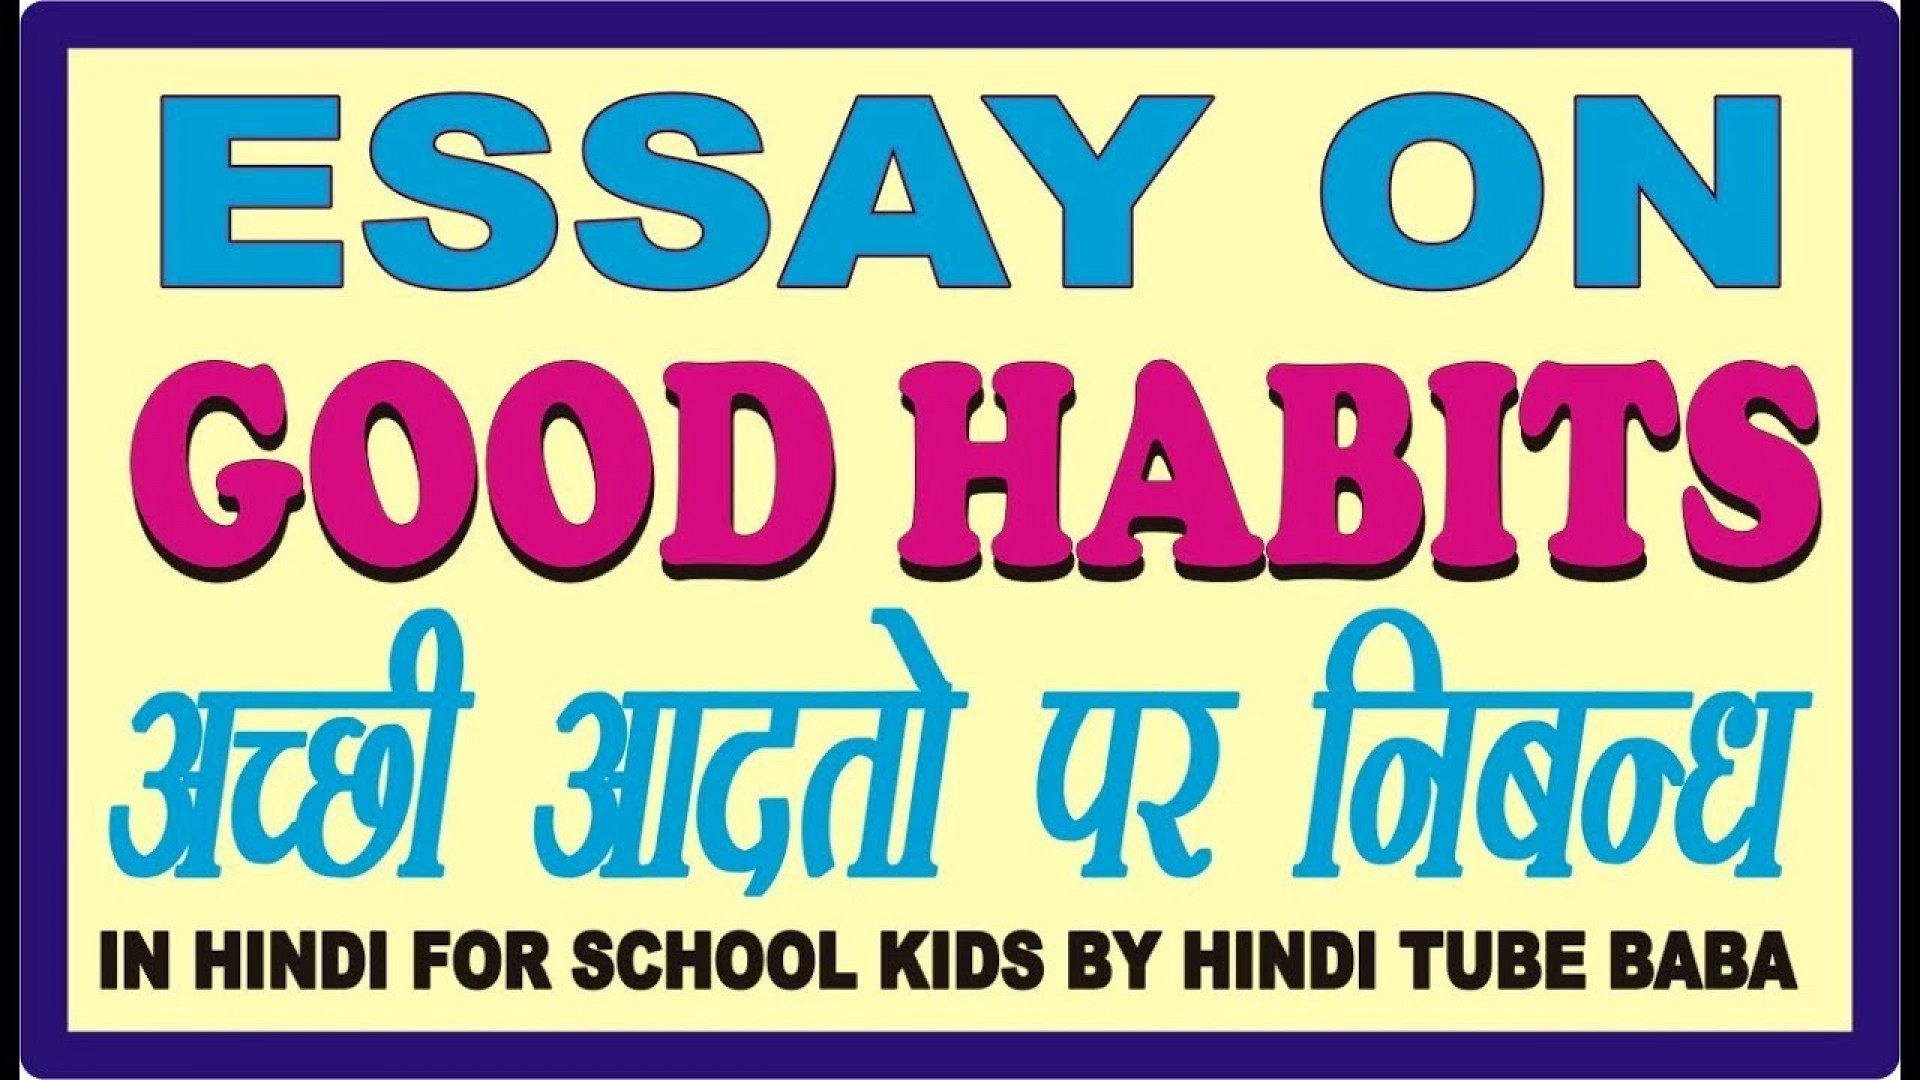 006 Good Habits Essay In Hindi Maxresdefault Exceptional Habit Eating And Bad 1920